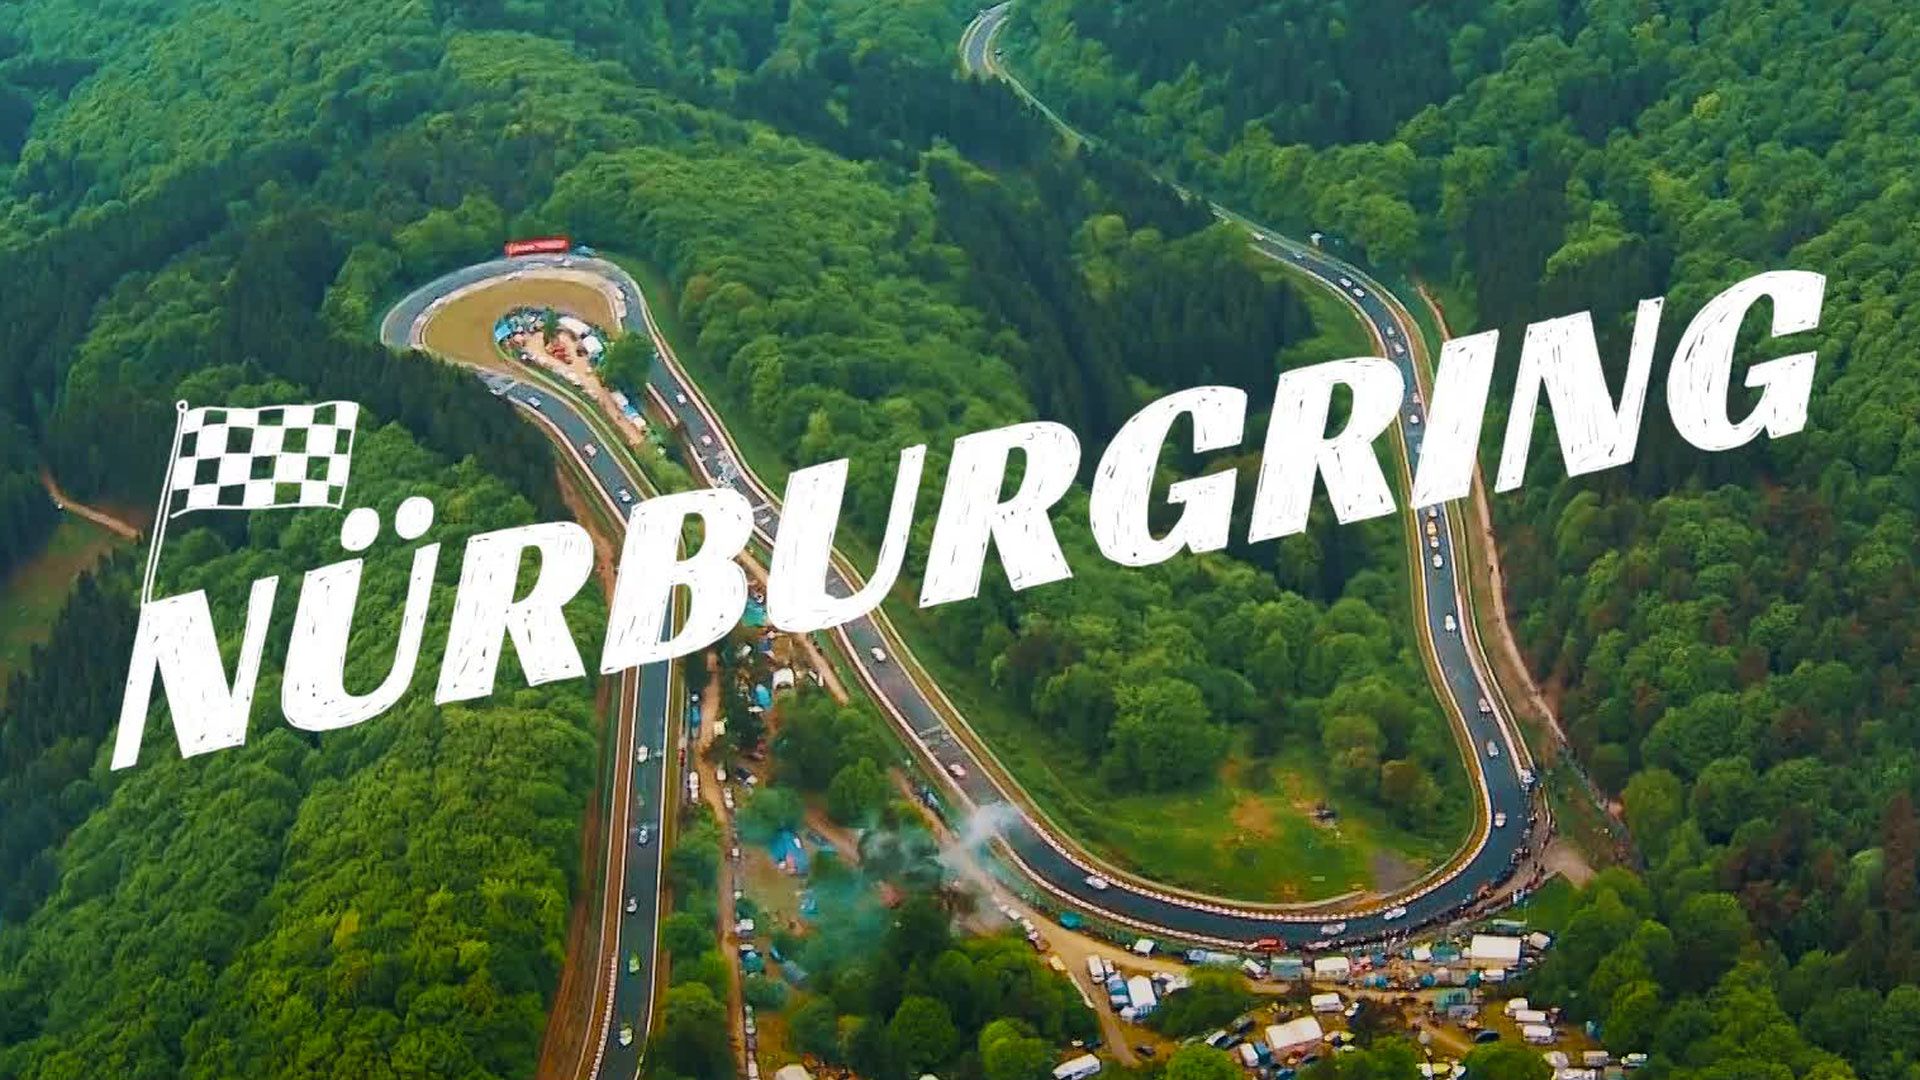 Around the world-Serie: thyssenkrupp am Nürburgring